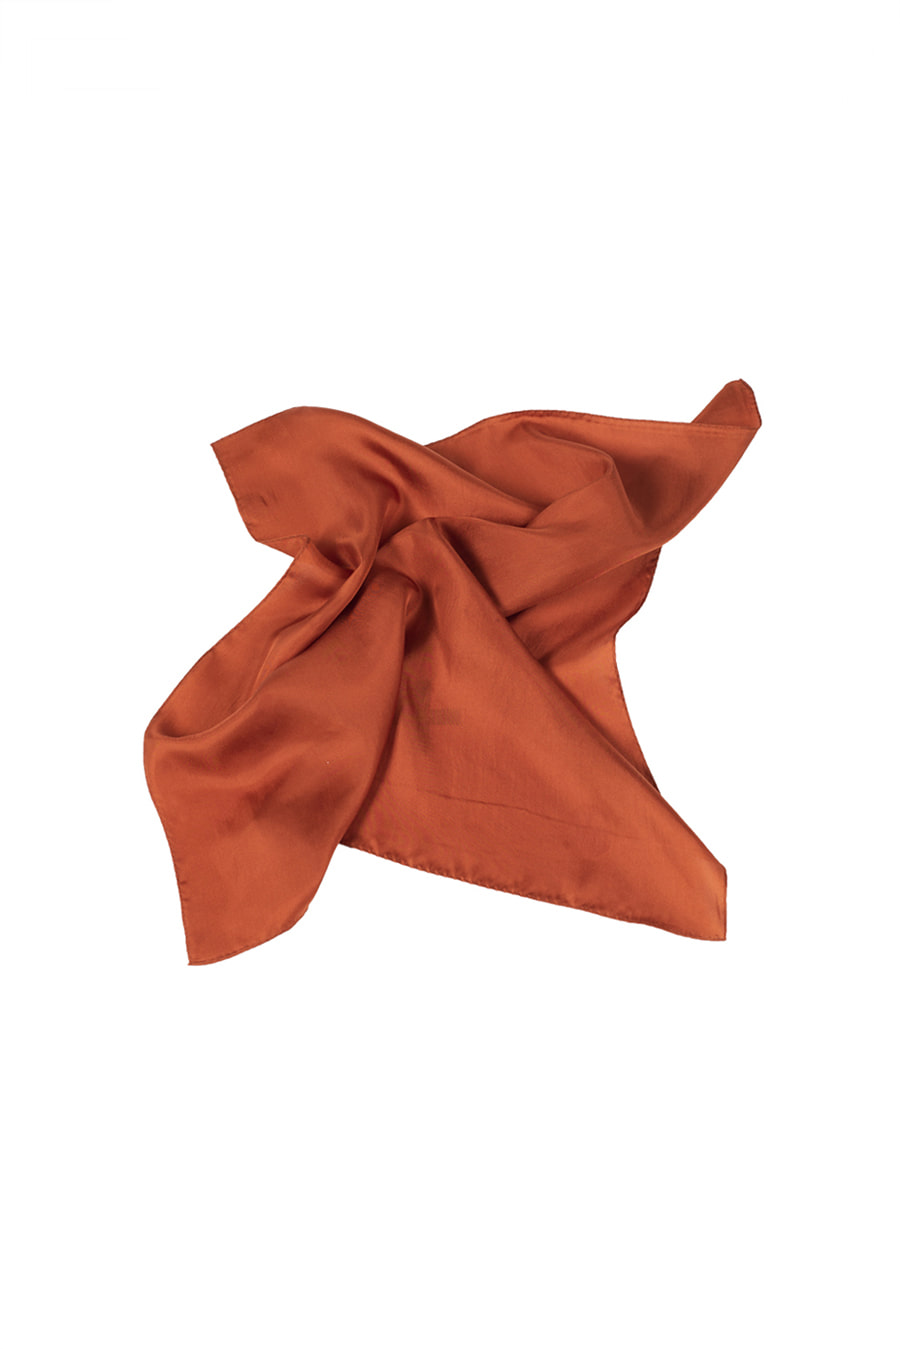 아티튜드(ARTTITUDE)Silk Bandana / Orange